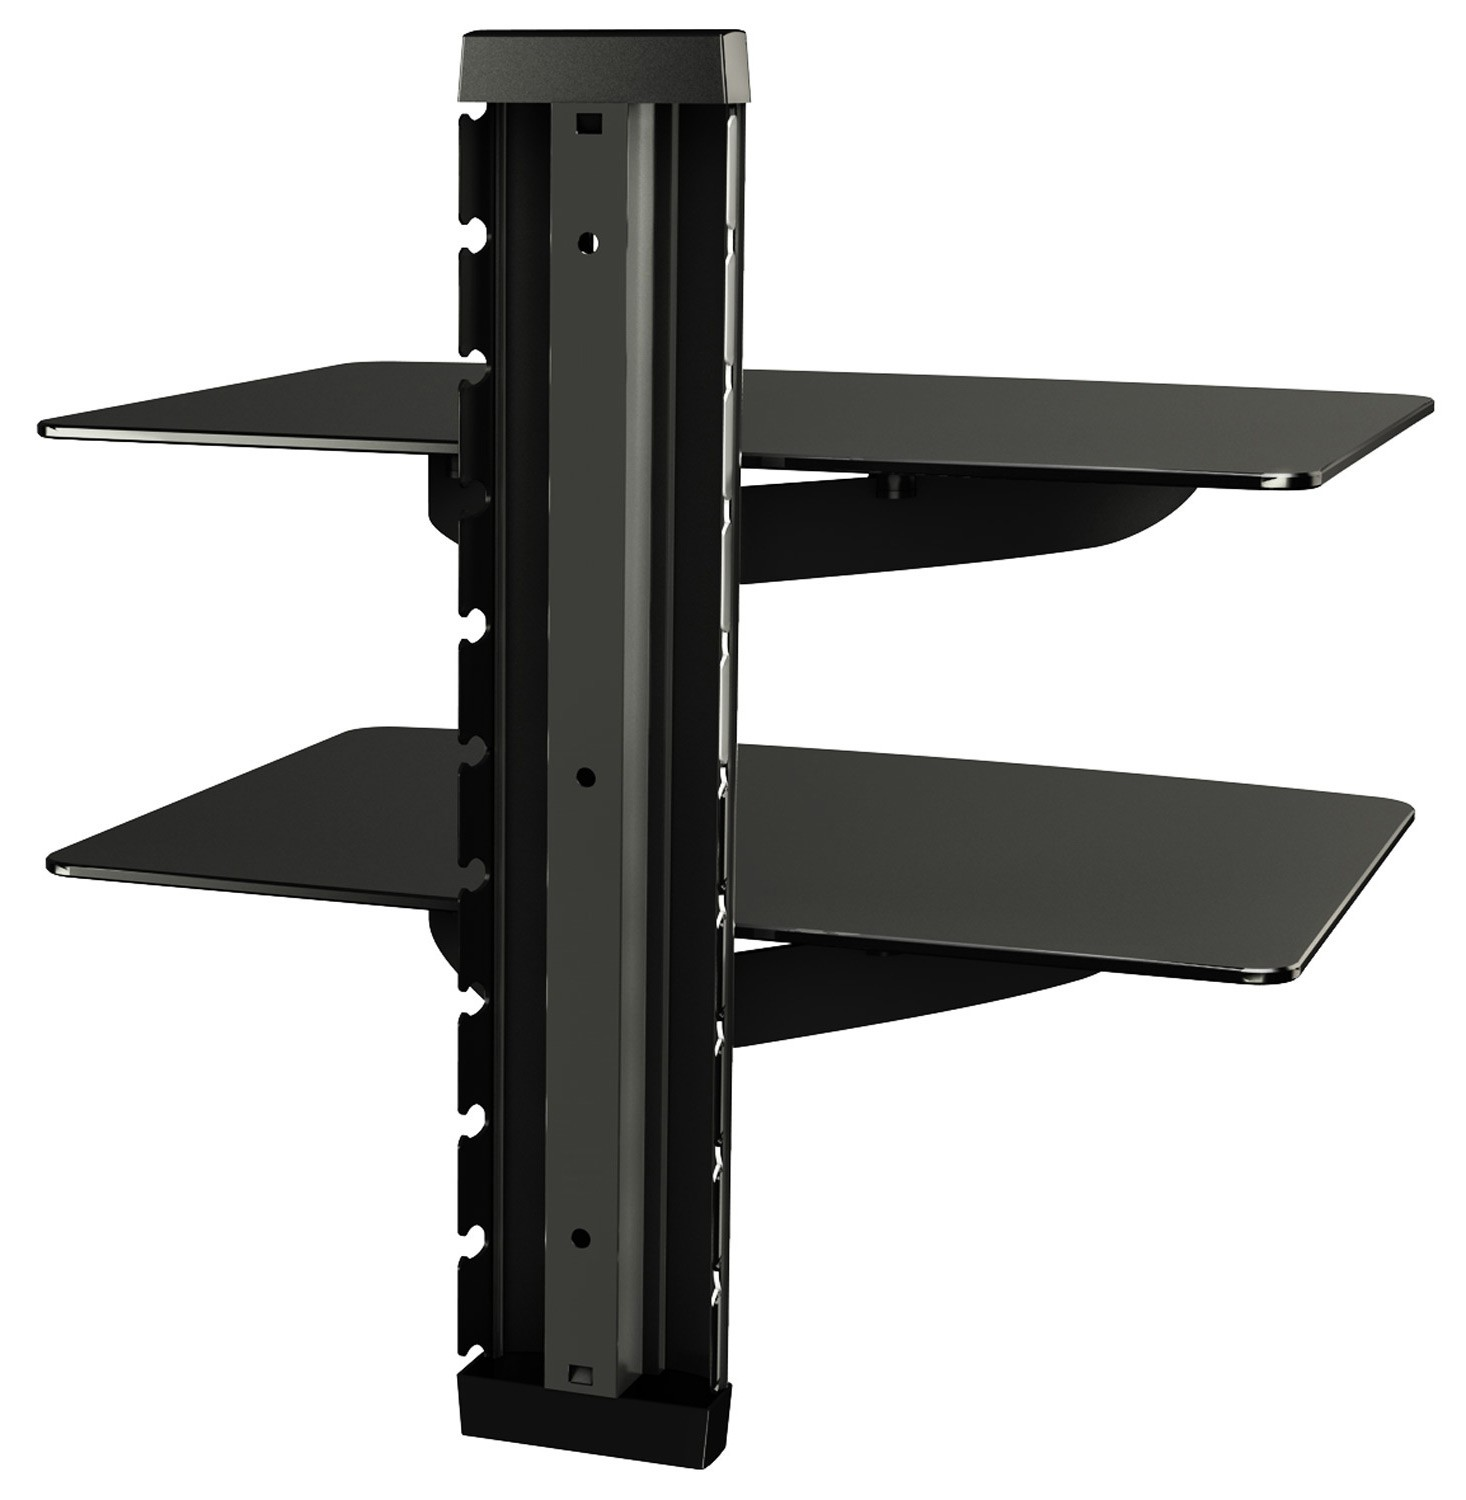 glasregal hifi wandregal wandboard hi fi regal dvd wand 11179. Black Bedroom Furniture Sets. Home Design Ideas